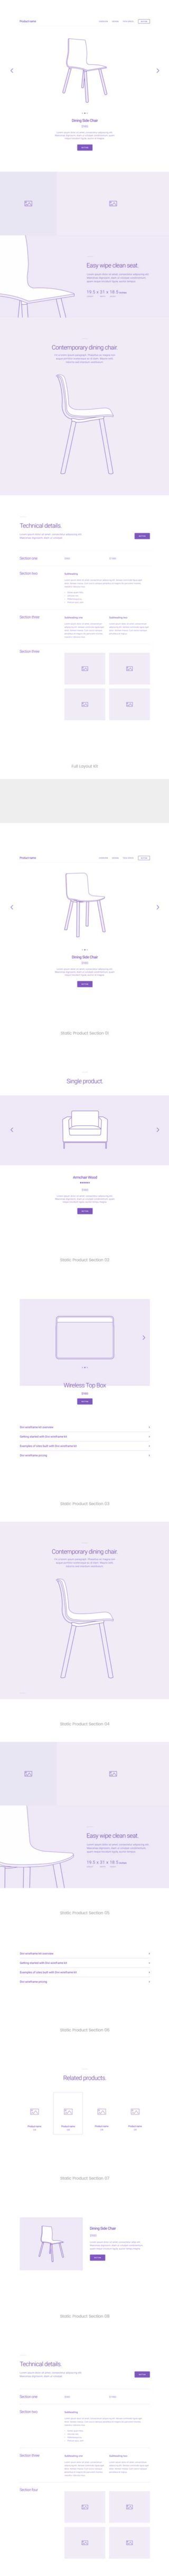 Divi product wireframe layout kit